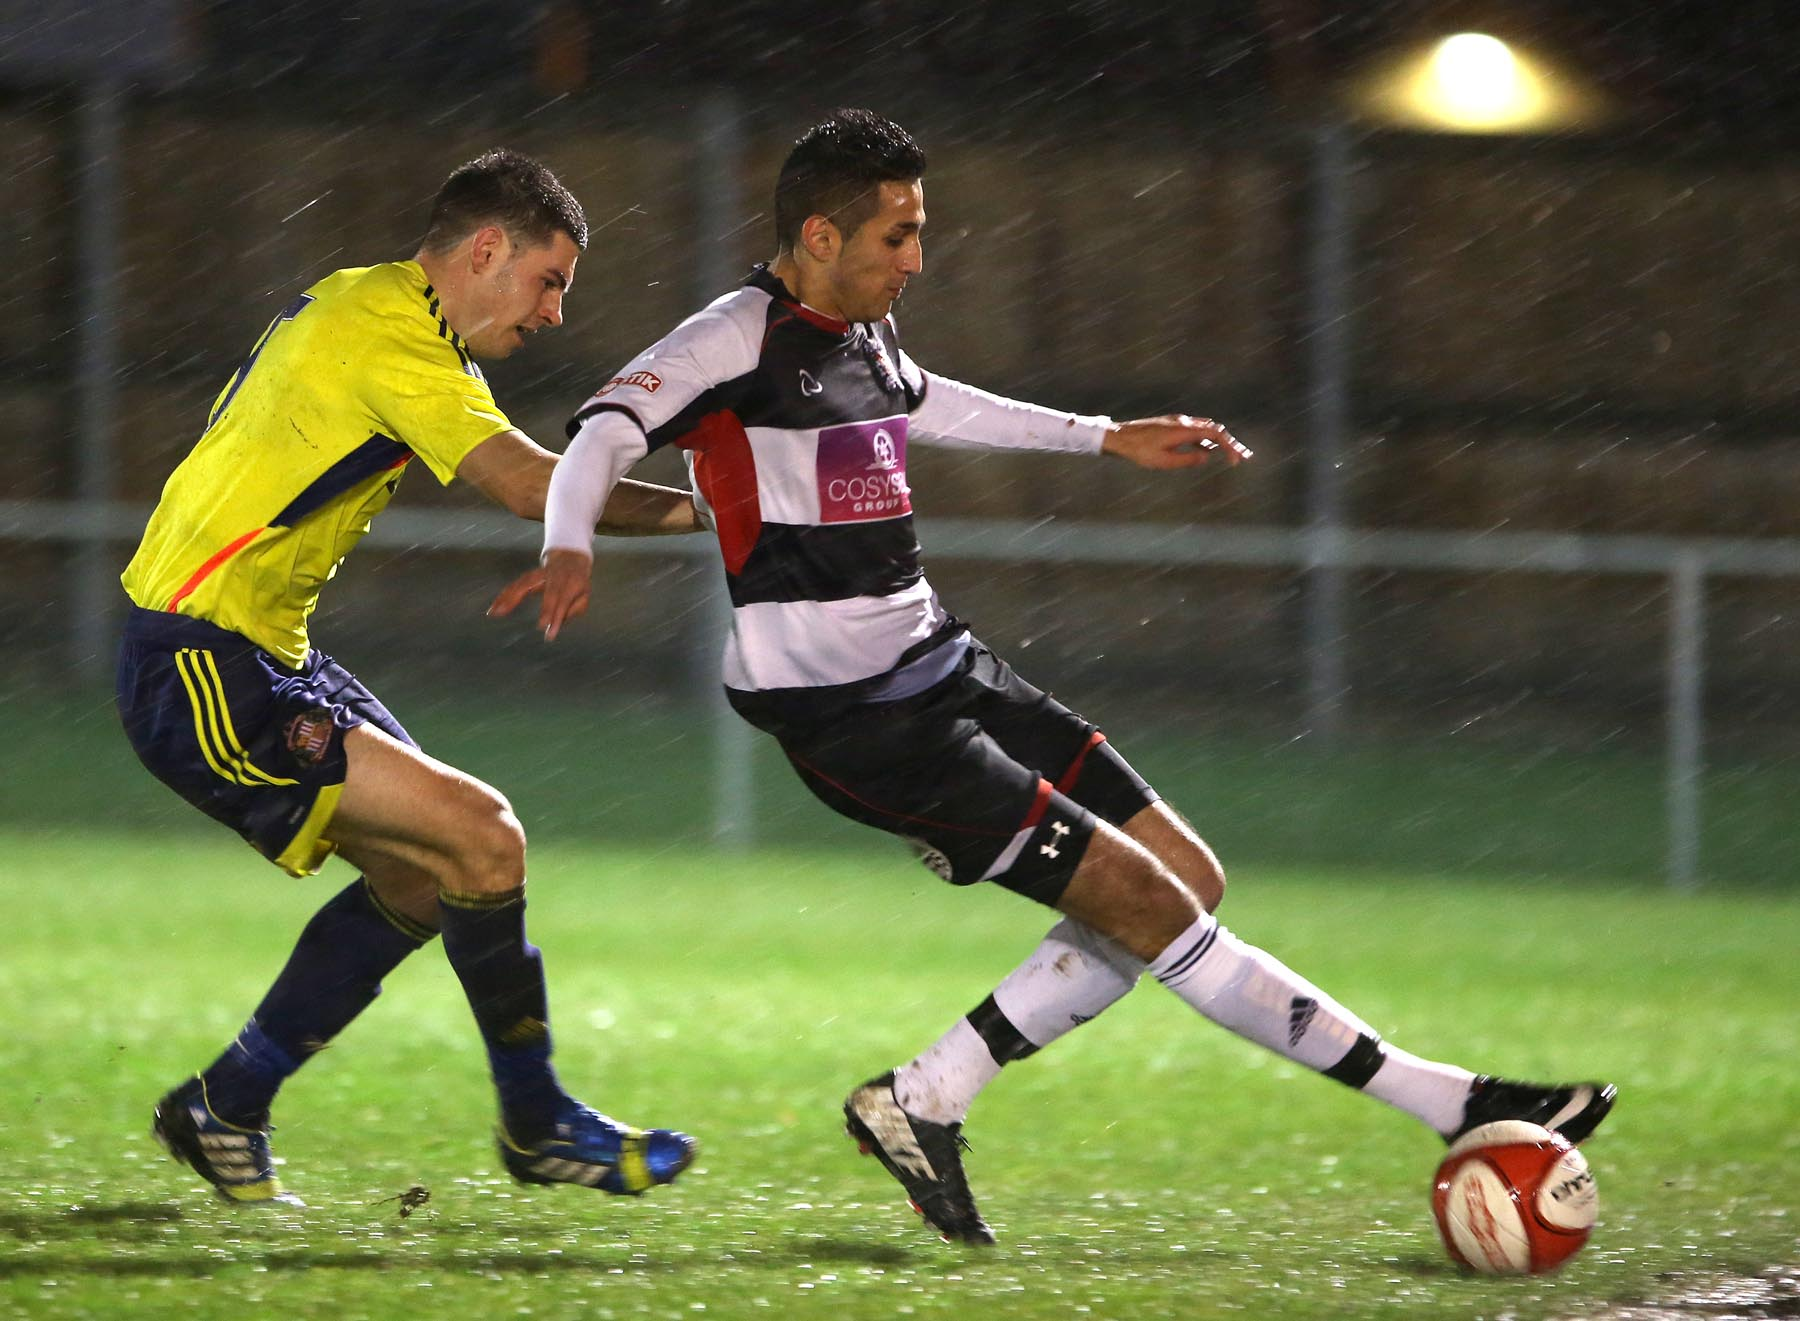 IN FORM: Amar Purewal scored his third goal in two games